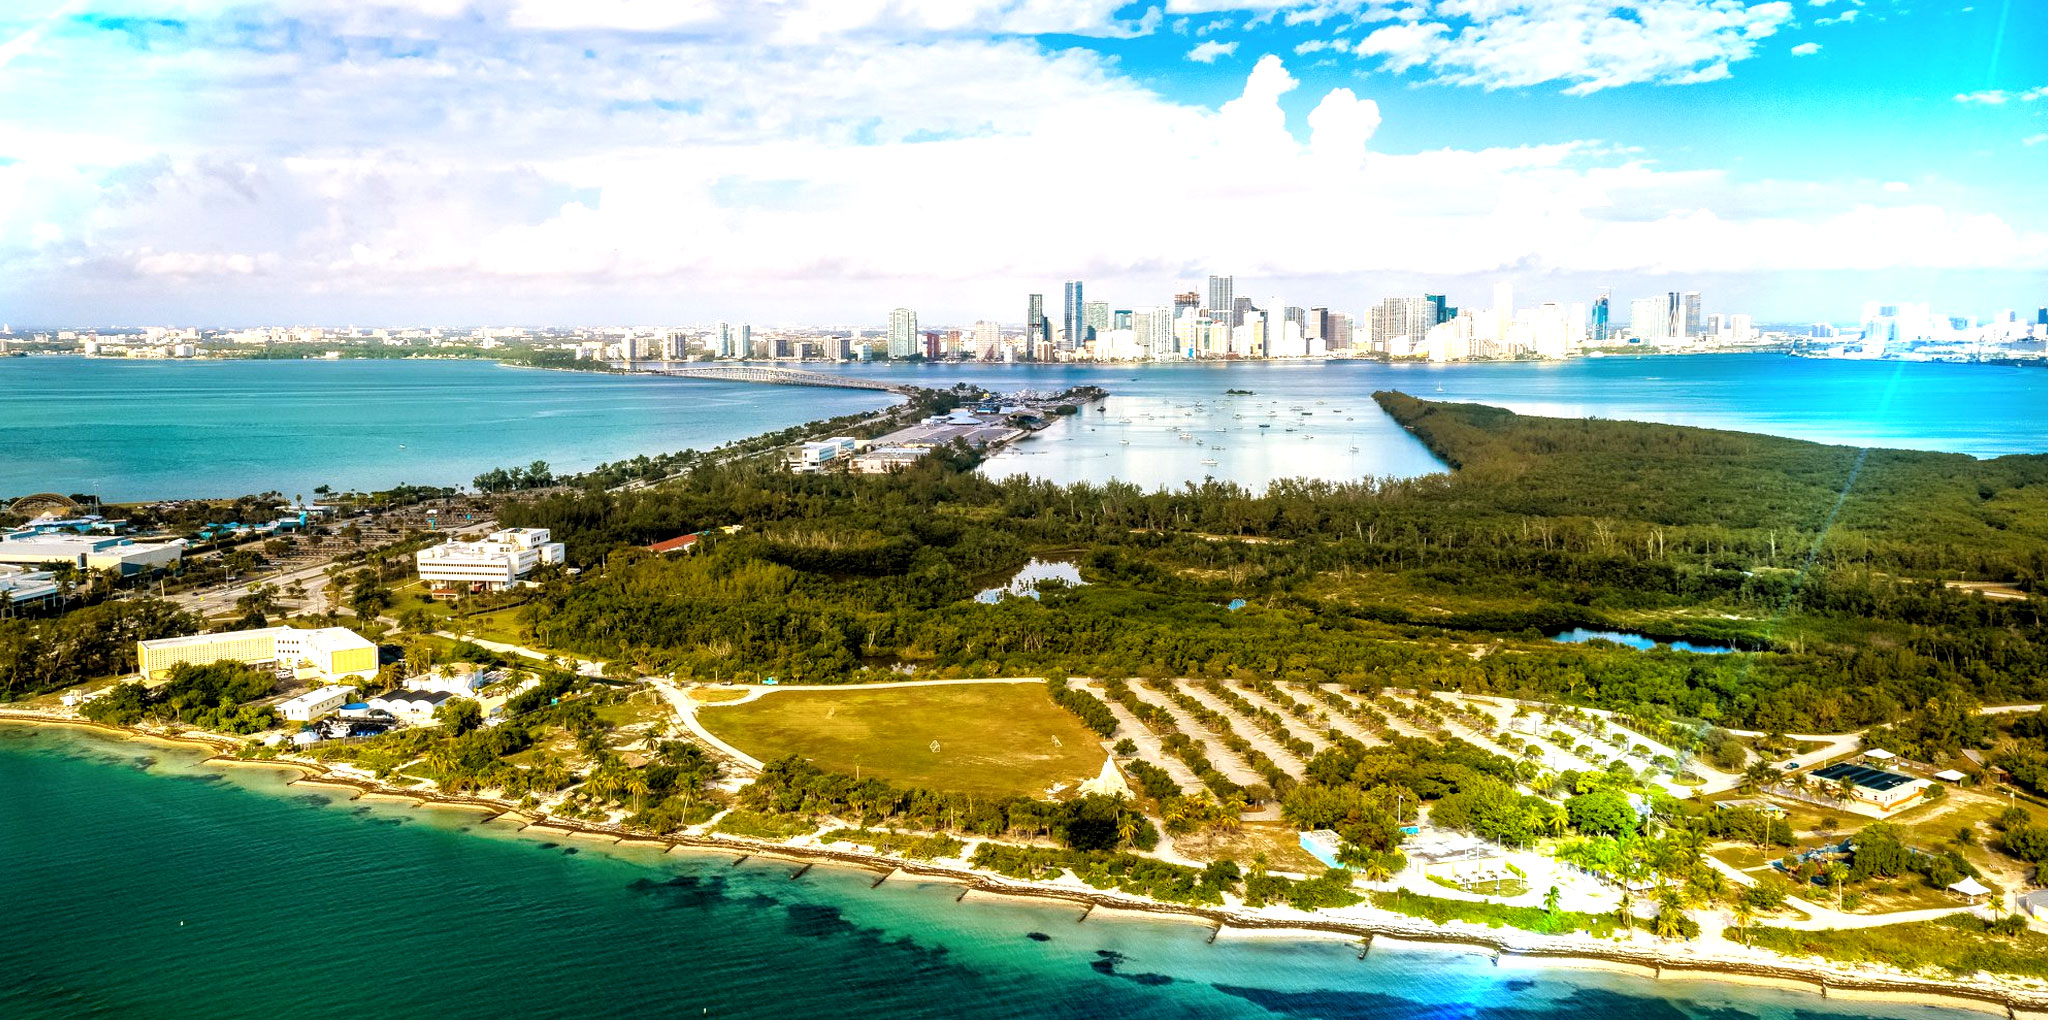 Miami Marine Stadium & Historic Virginia Key Beach Park Image